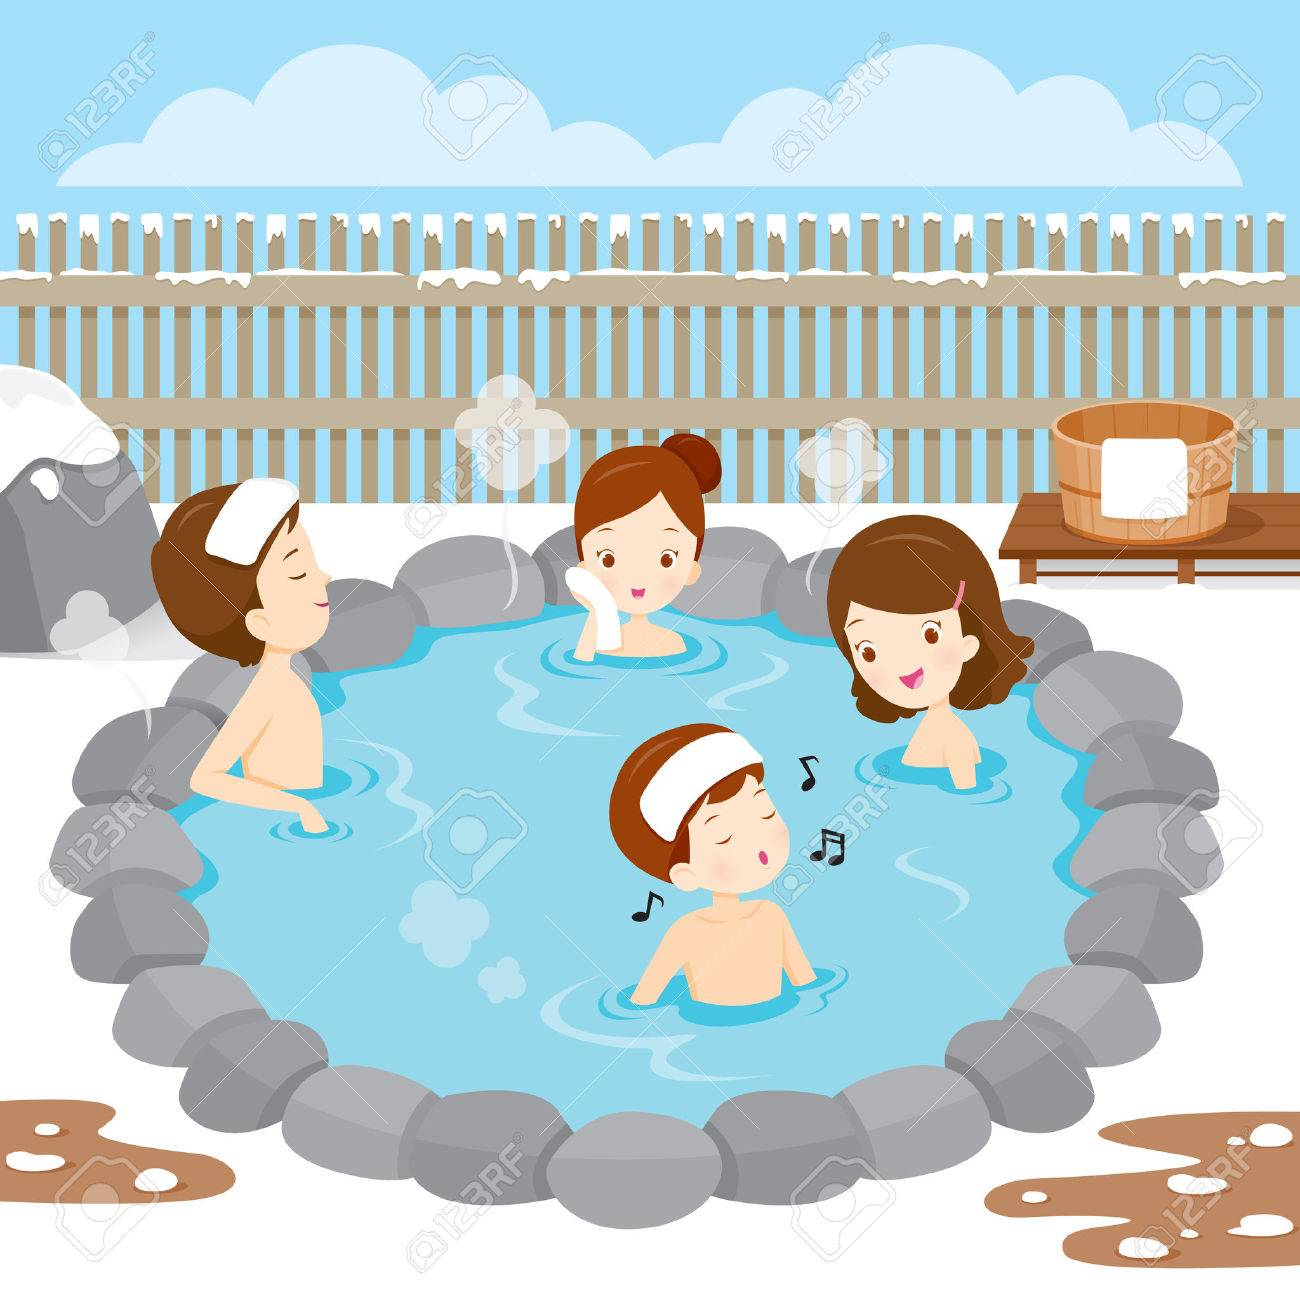 Family Relaxing In Hot Spring, Bath, Onsen, Japanese, Culture ...